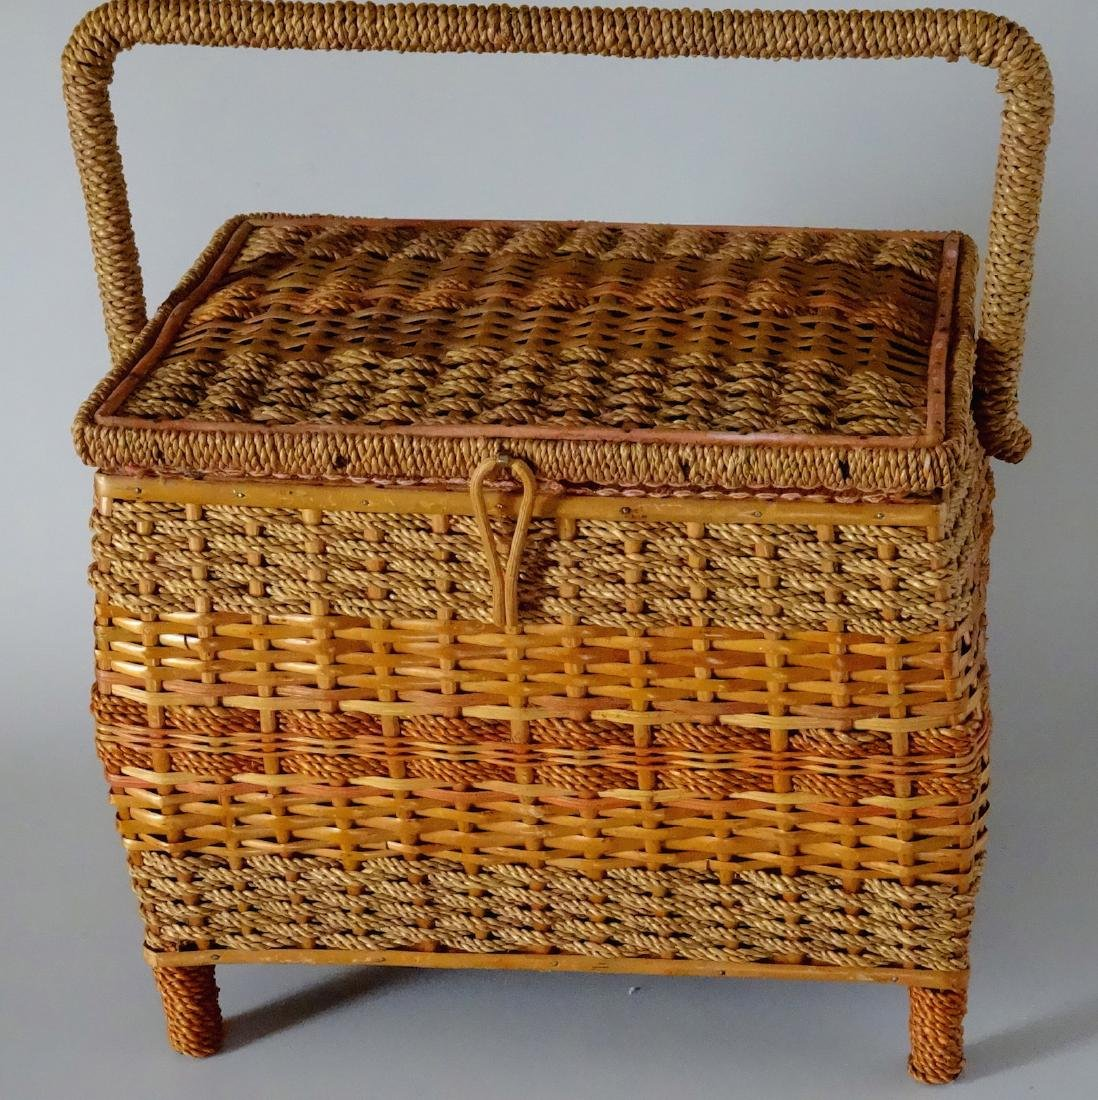 Vintage Sewing Box Wicker Basket Pink Upholstery - 2